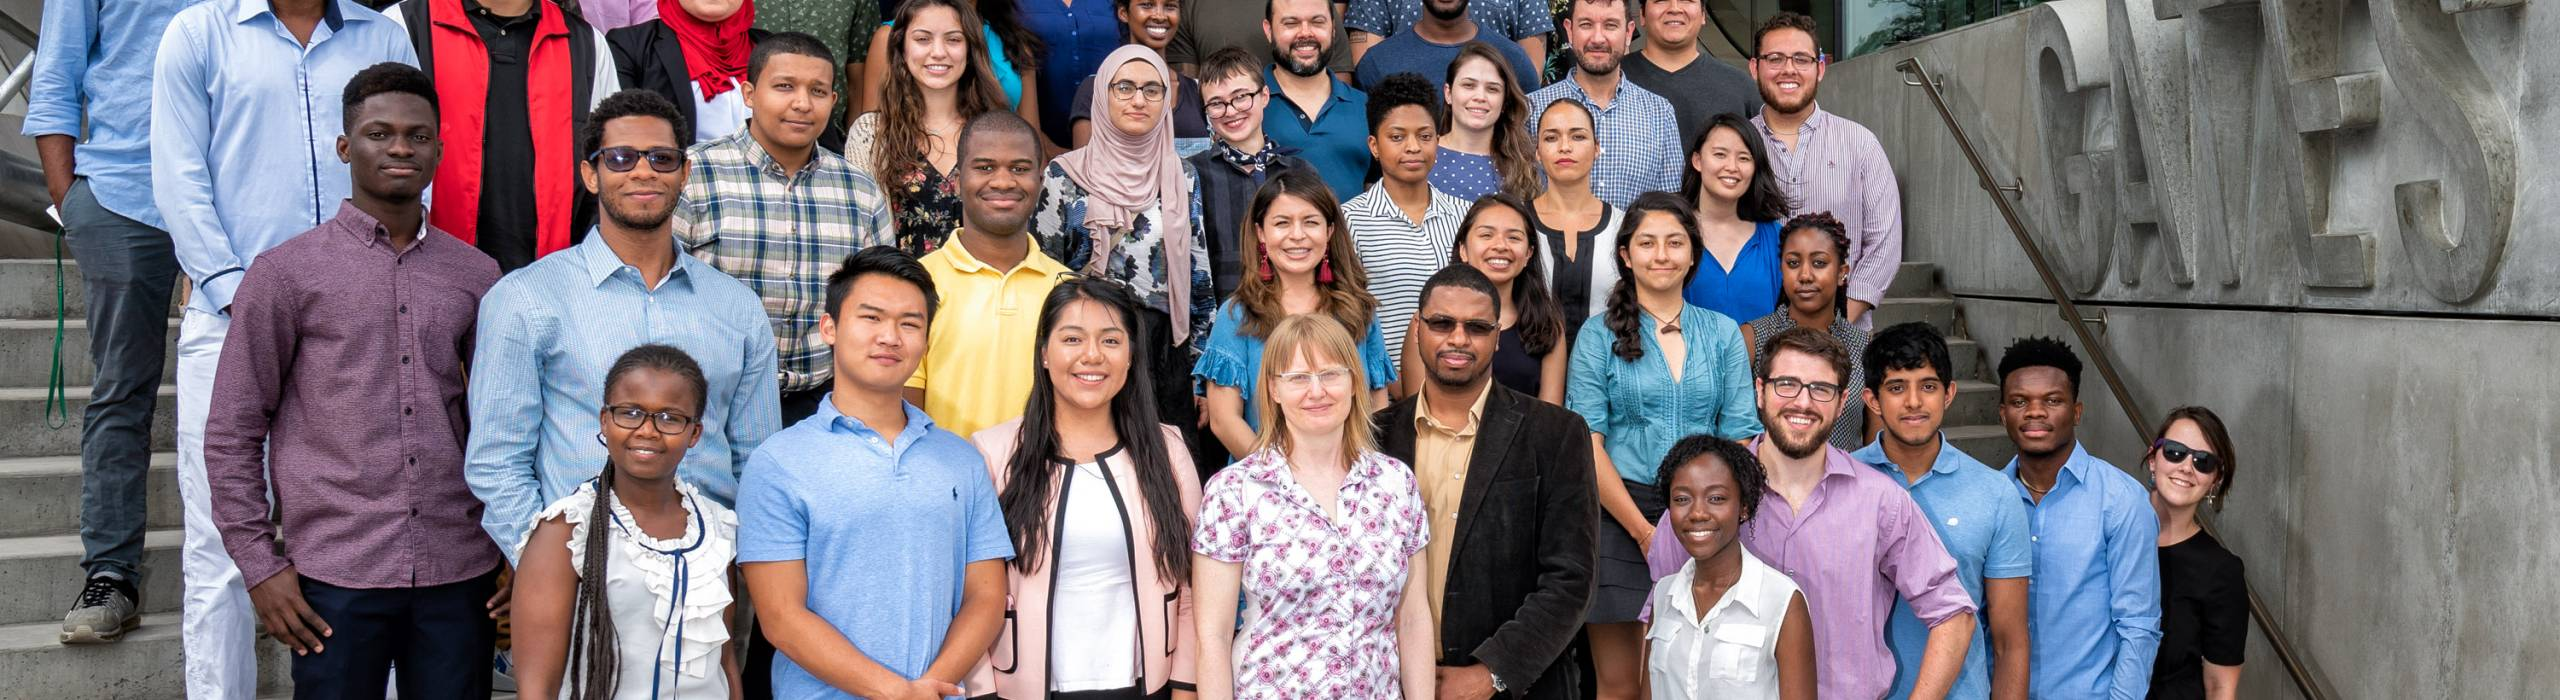 The 2018 cohort of students invited to Computing and Information Science's two summer research programs, SONiC and Designing Technology for Social Impact.